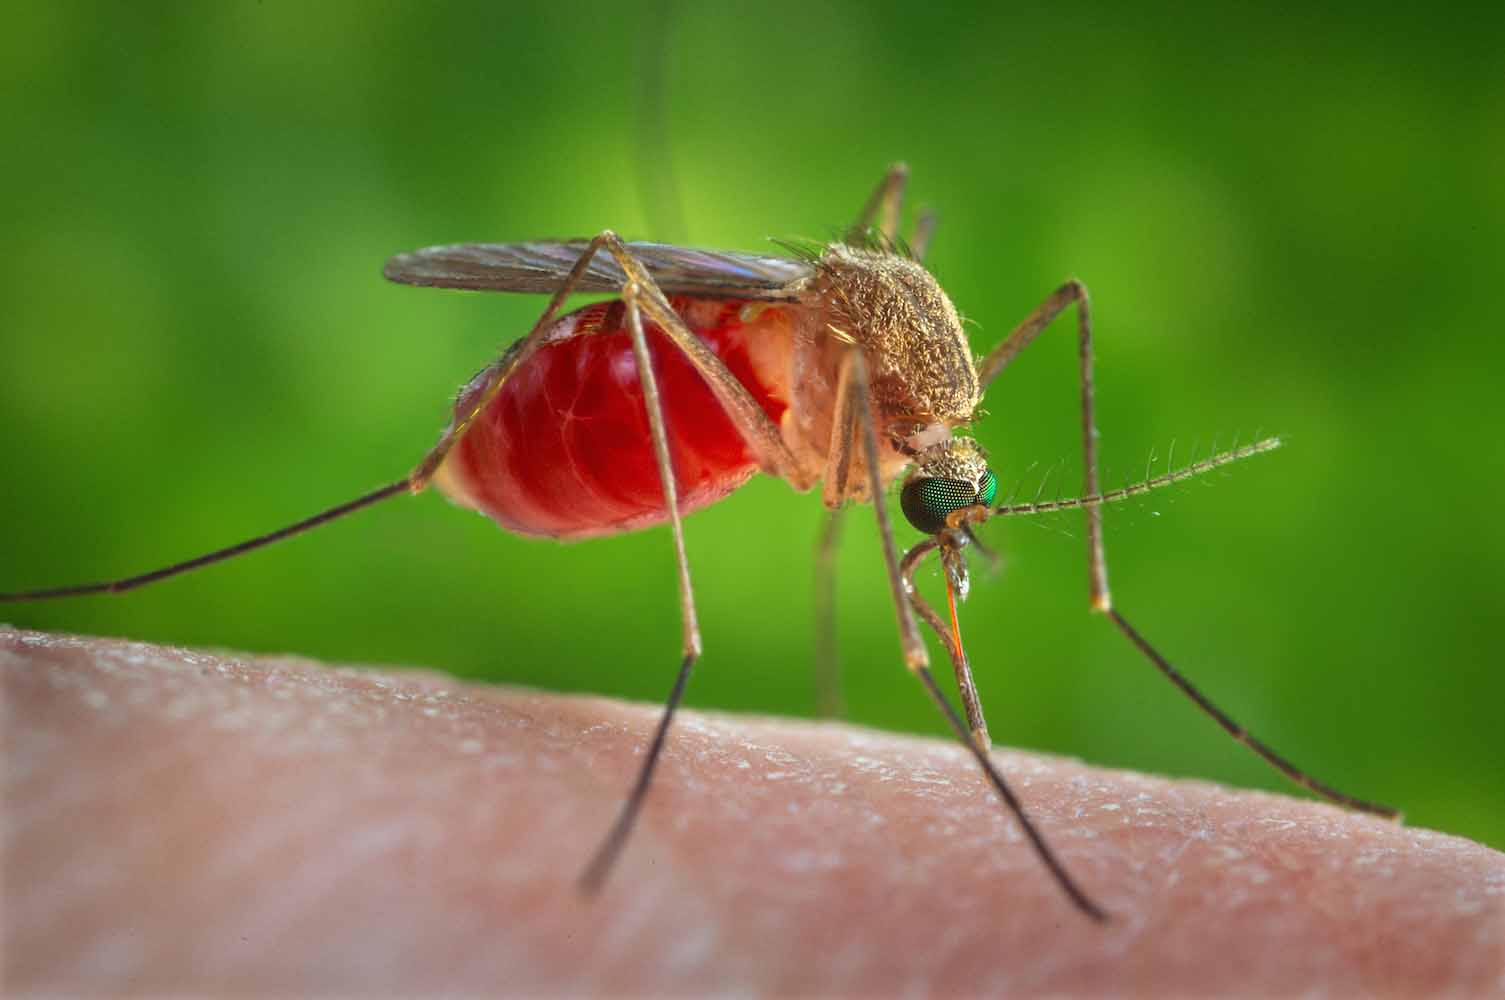 While many of Georgia's 63 species of mosquito thrive in wet weather, southern house mosquitoes — which transmit West Nile virus — prefer dry or even drought conditions.